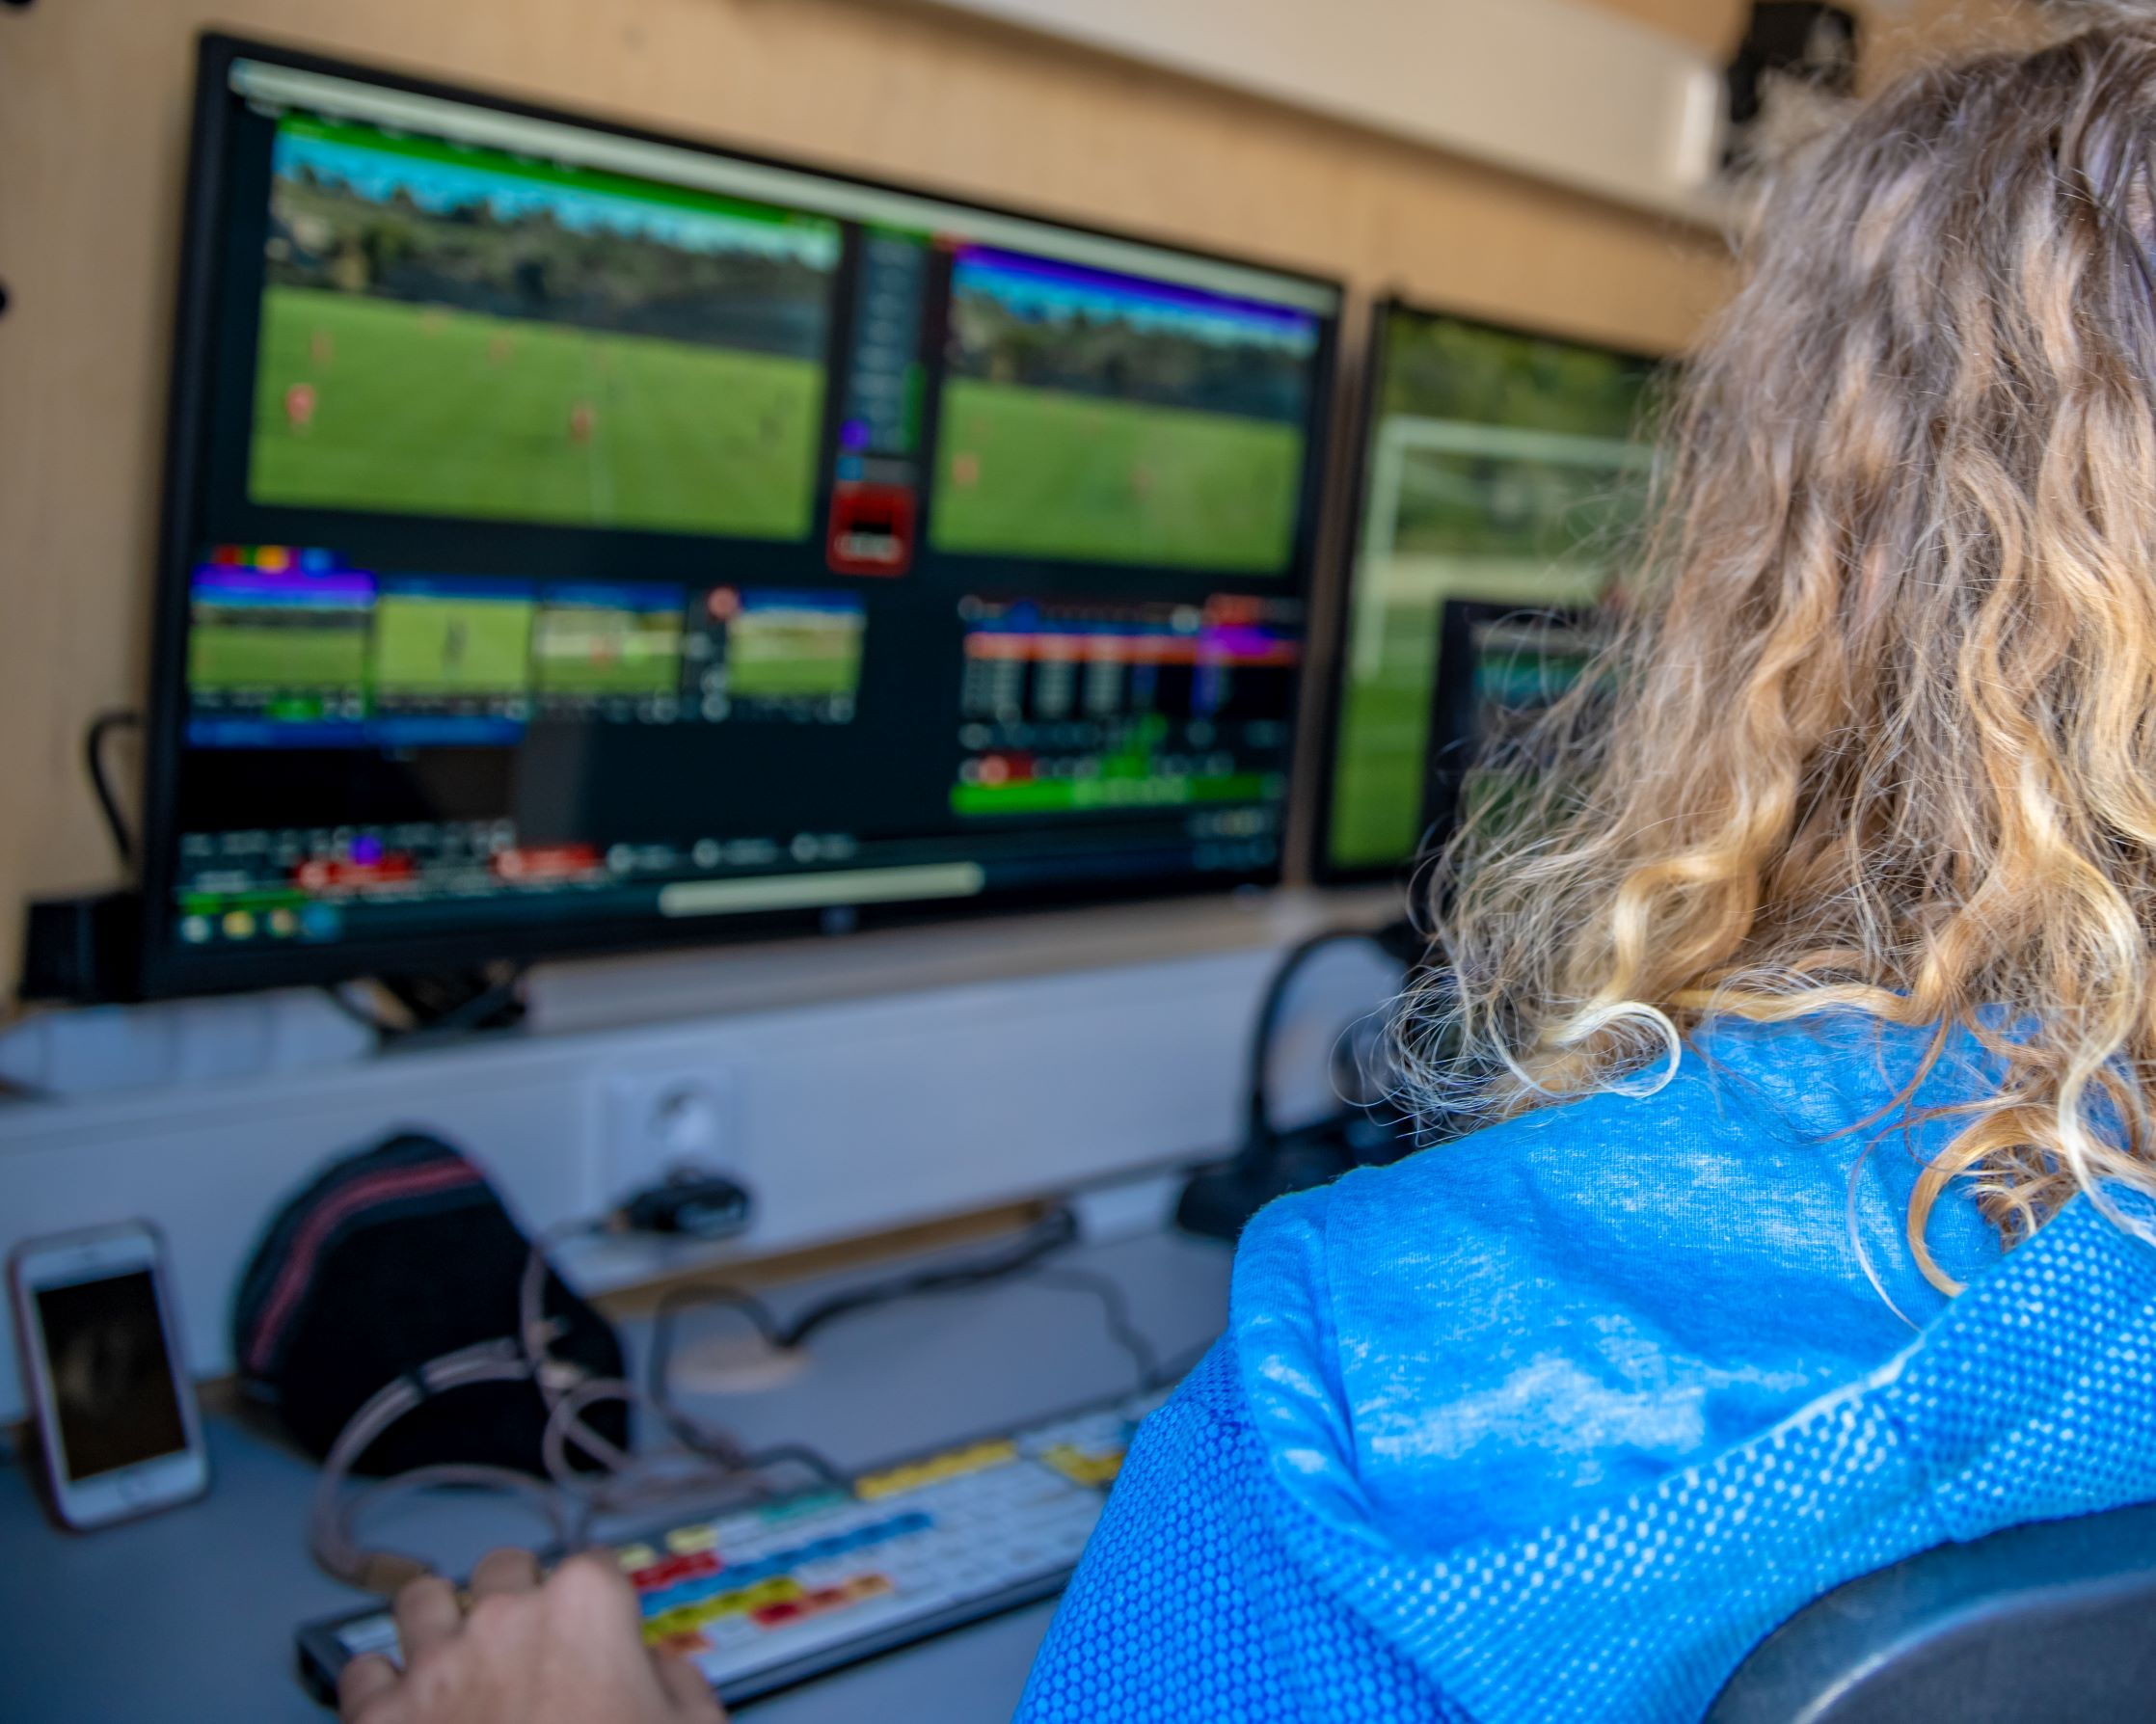 A behind the scenes look at a women working to broadcast a live sport event.